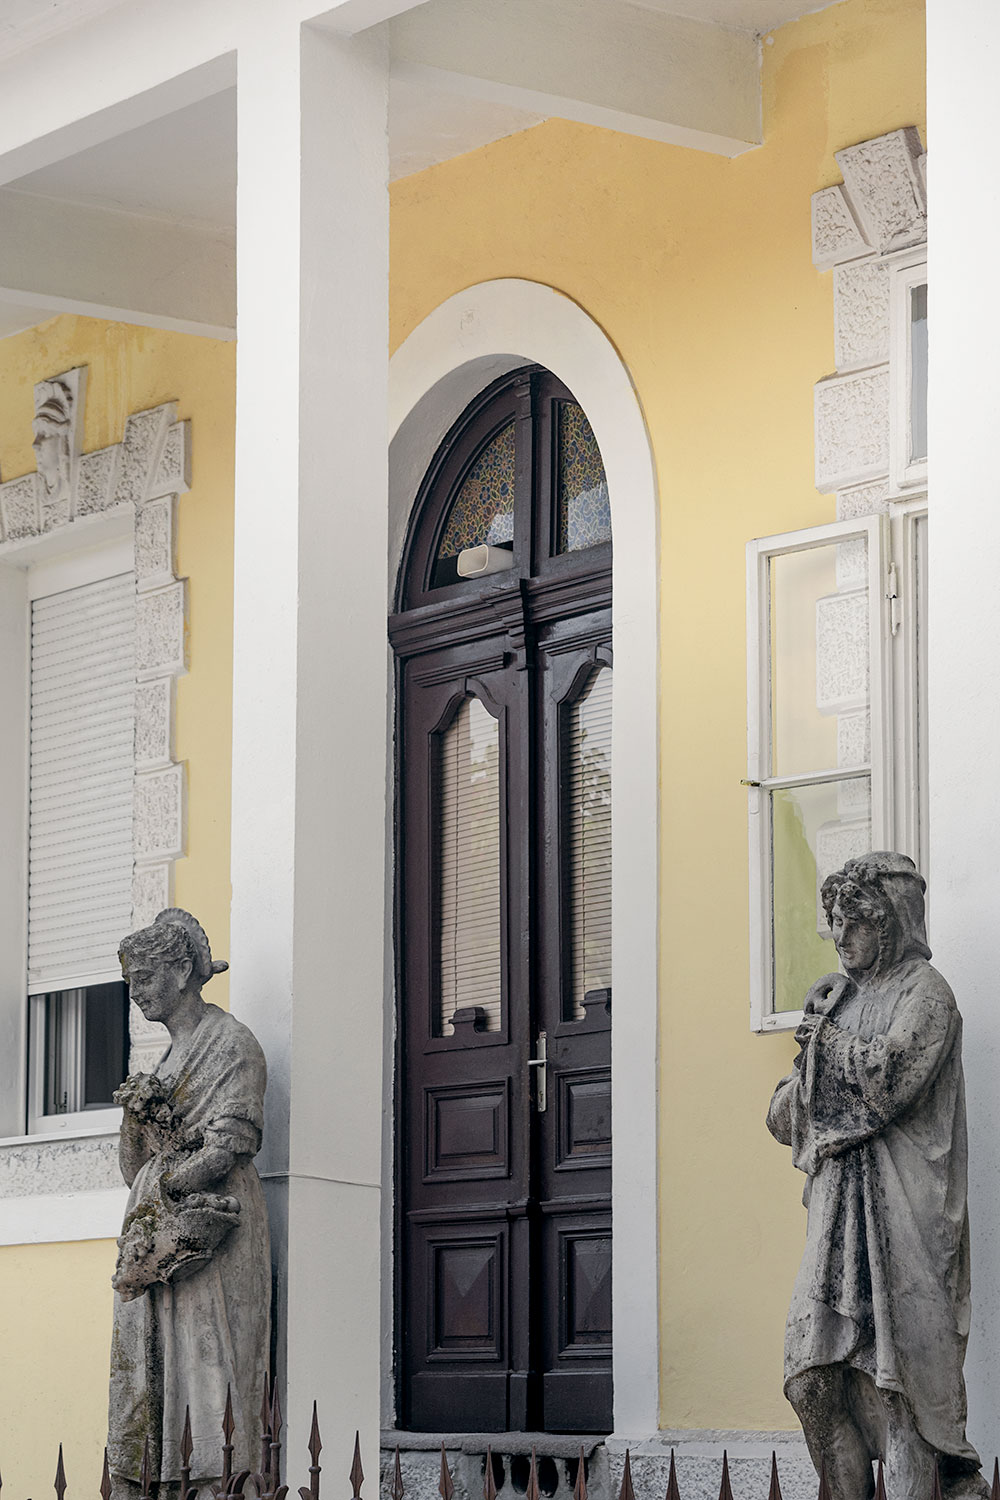 Statues in Cetinje the Old Royal Capital of Montenegro